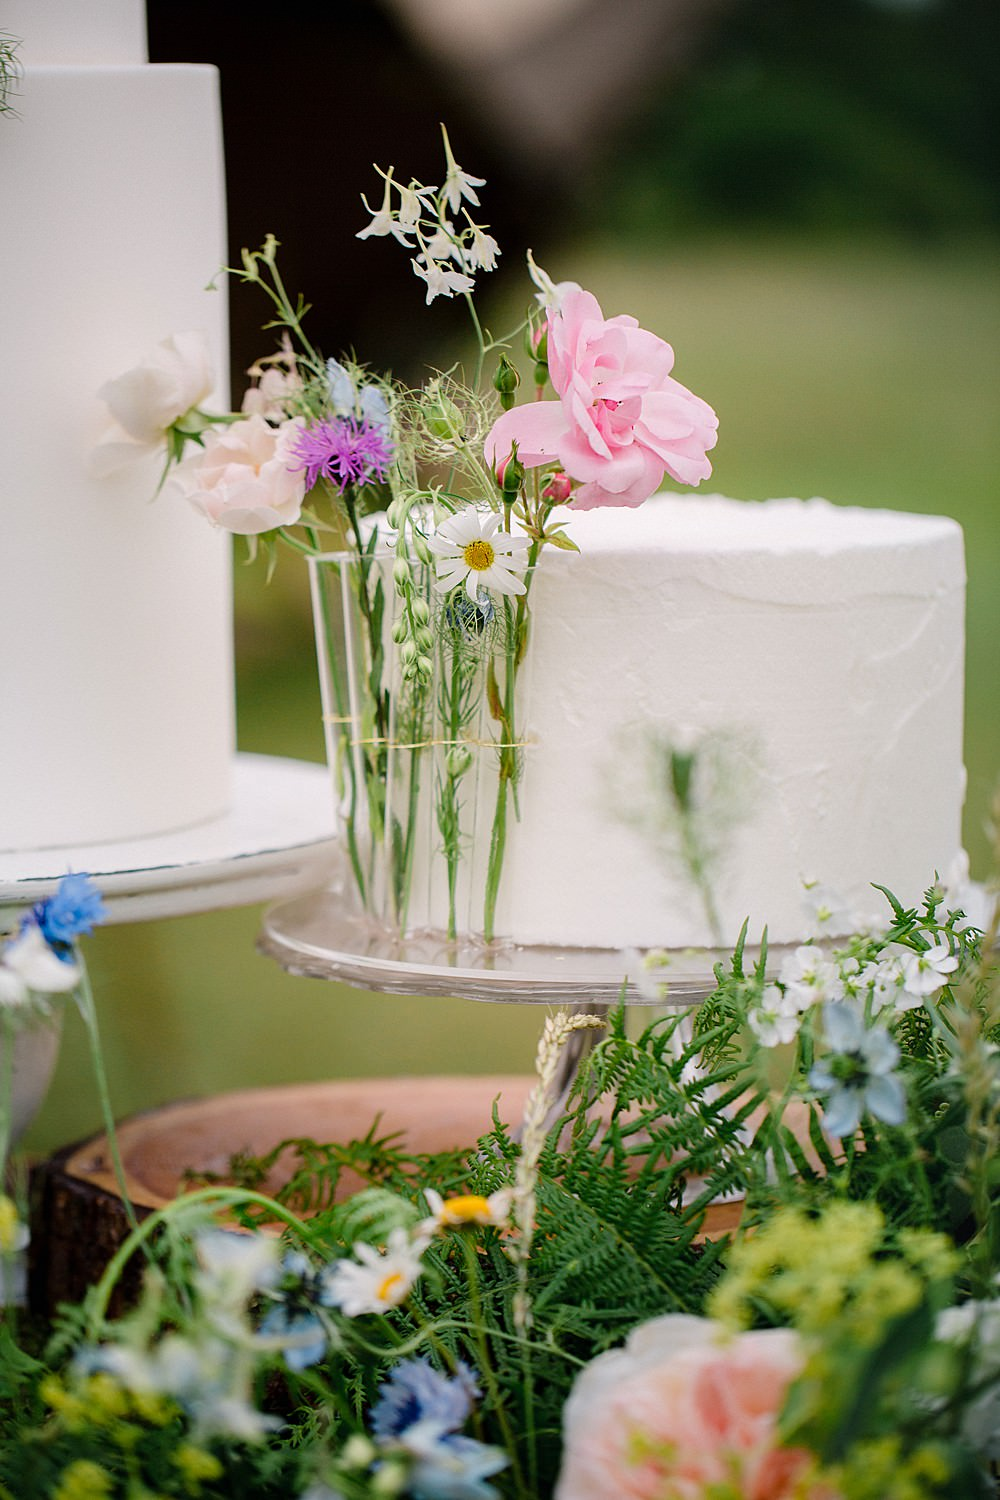 Iced Cake Test Tube Flowers Pretty Pet Wedding Ideas Vicky Plum Photography